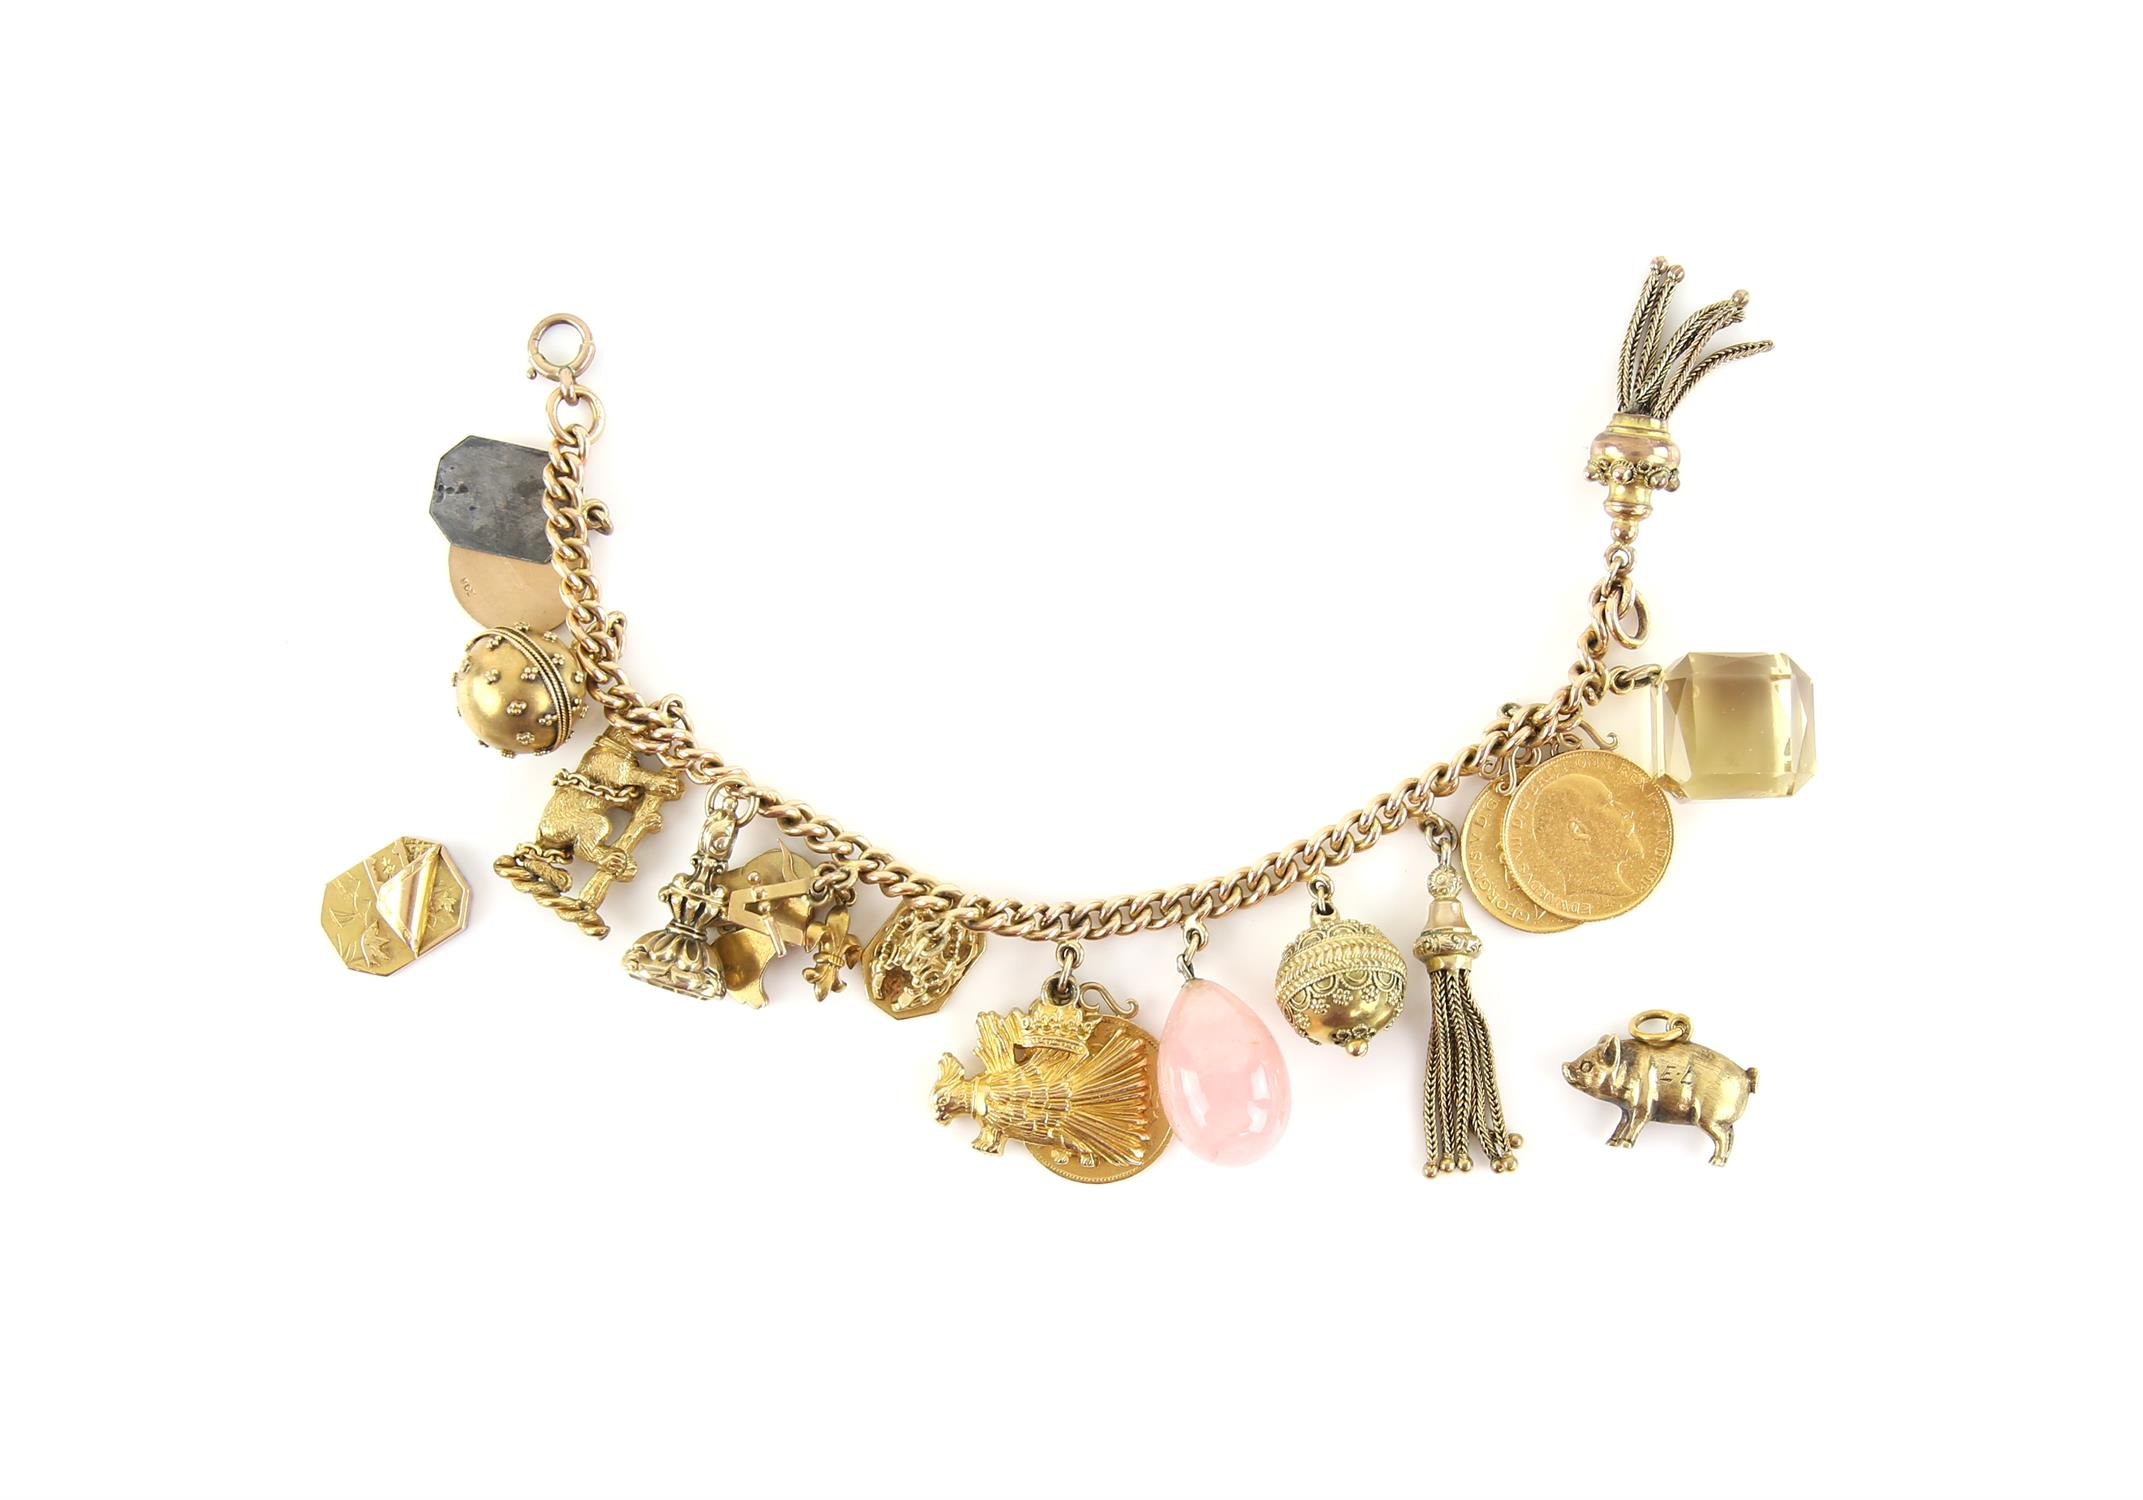 Antique charm bracelet, curb link bracelet with a bolt ring clasp,19 cm in length, hallmarked 15 ct.